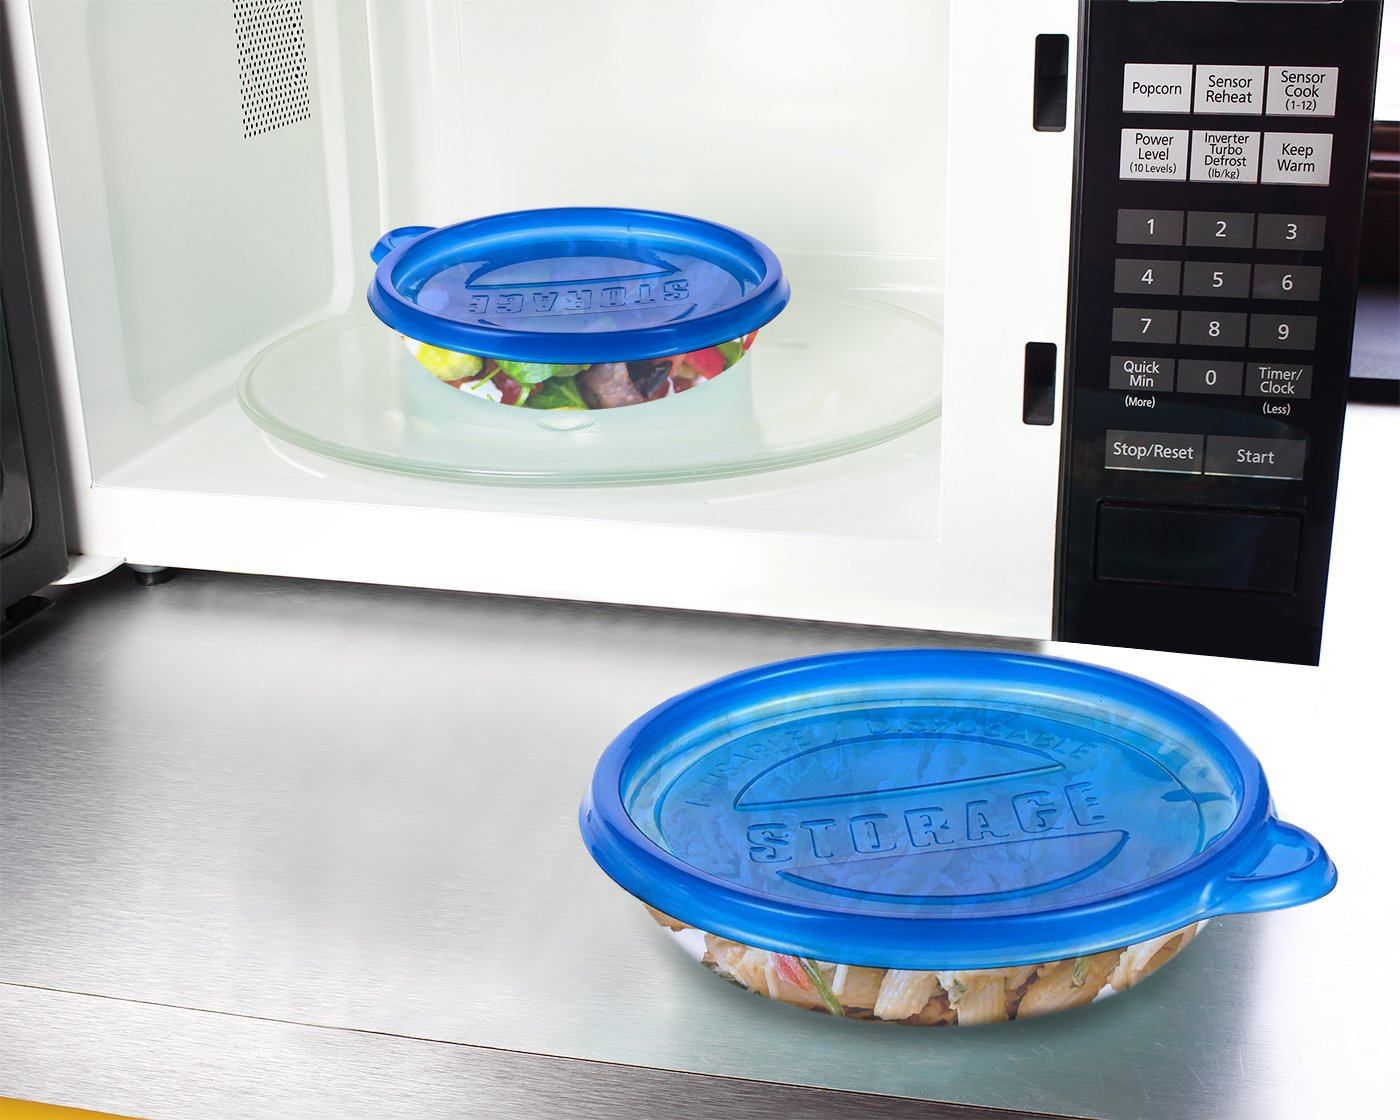 40-Pack Plastic Food Containers with Lids - Small Round Food Storage Containers, Deli Take Out Restaurant Containers, Microwave, Freezer, Dishwasher Safe, Fits 9.5 Fluid Ounces, 9.5 fl oz by Juvale (Image #2)